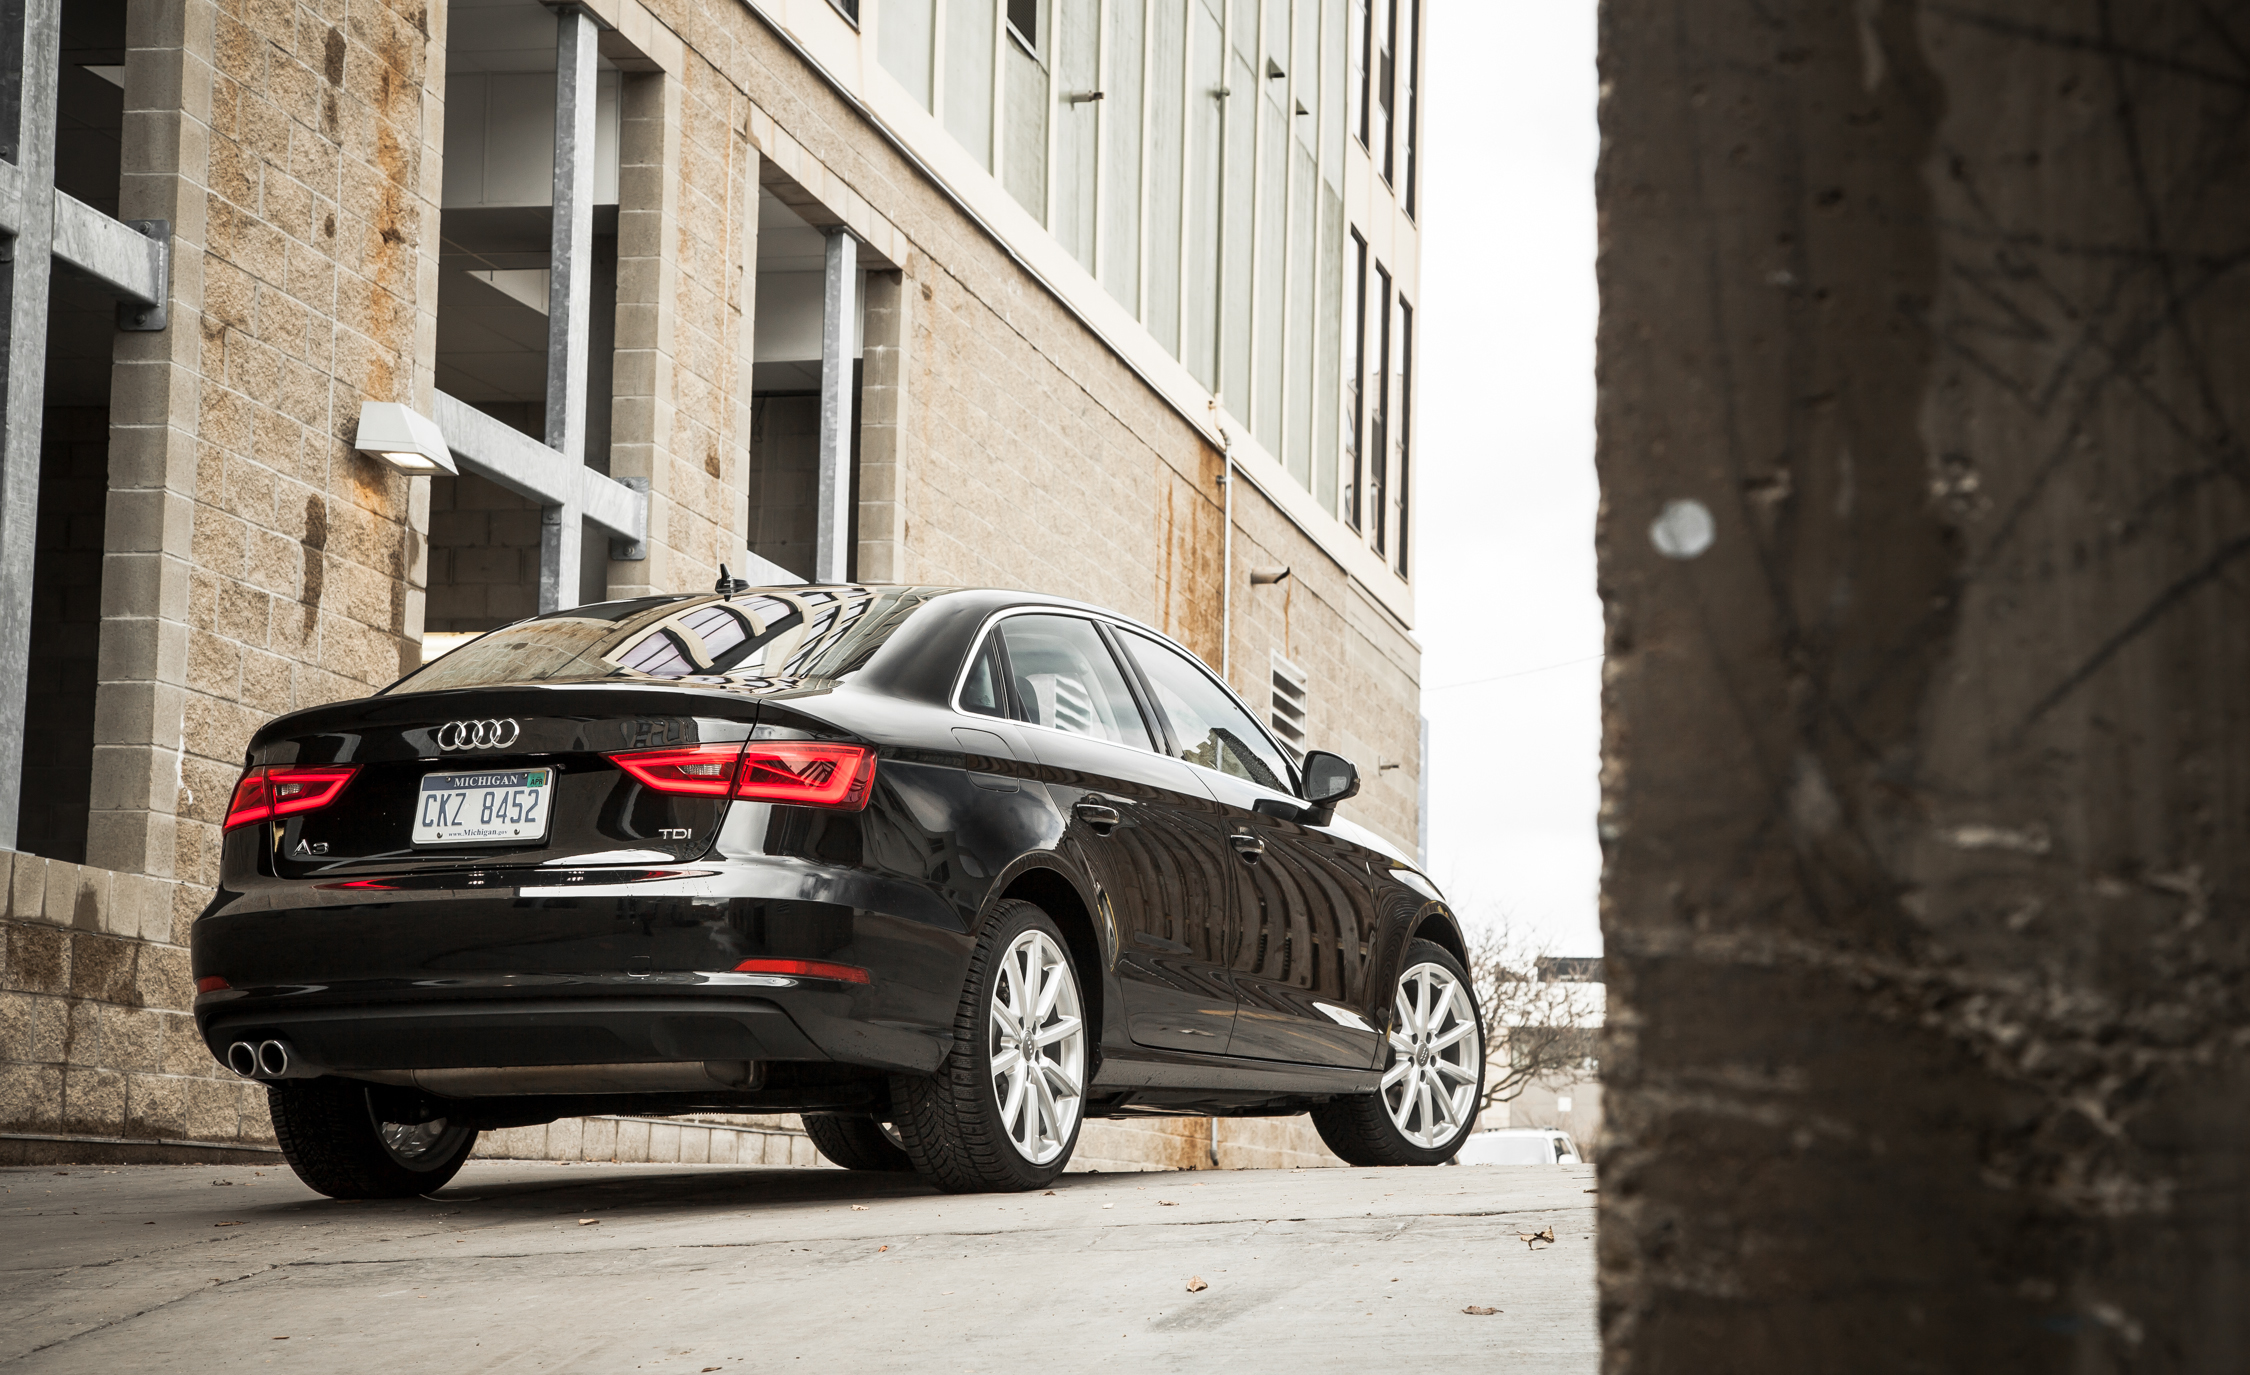 2015 Audi A3 TDI Exterior Rear And Side (Photo 26 of 50)